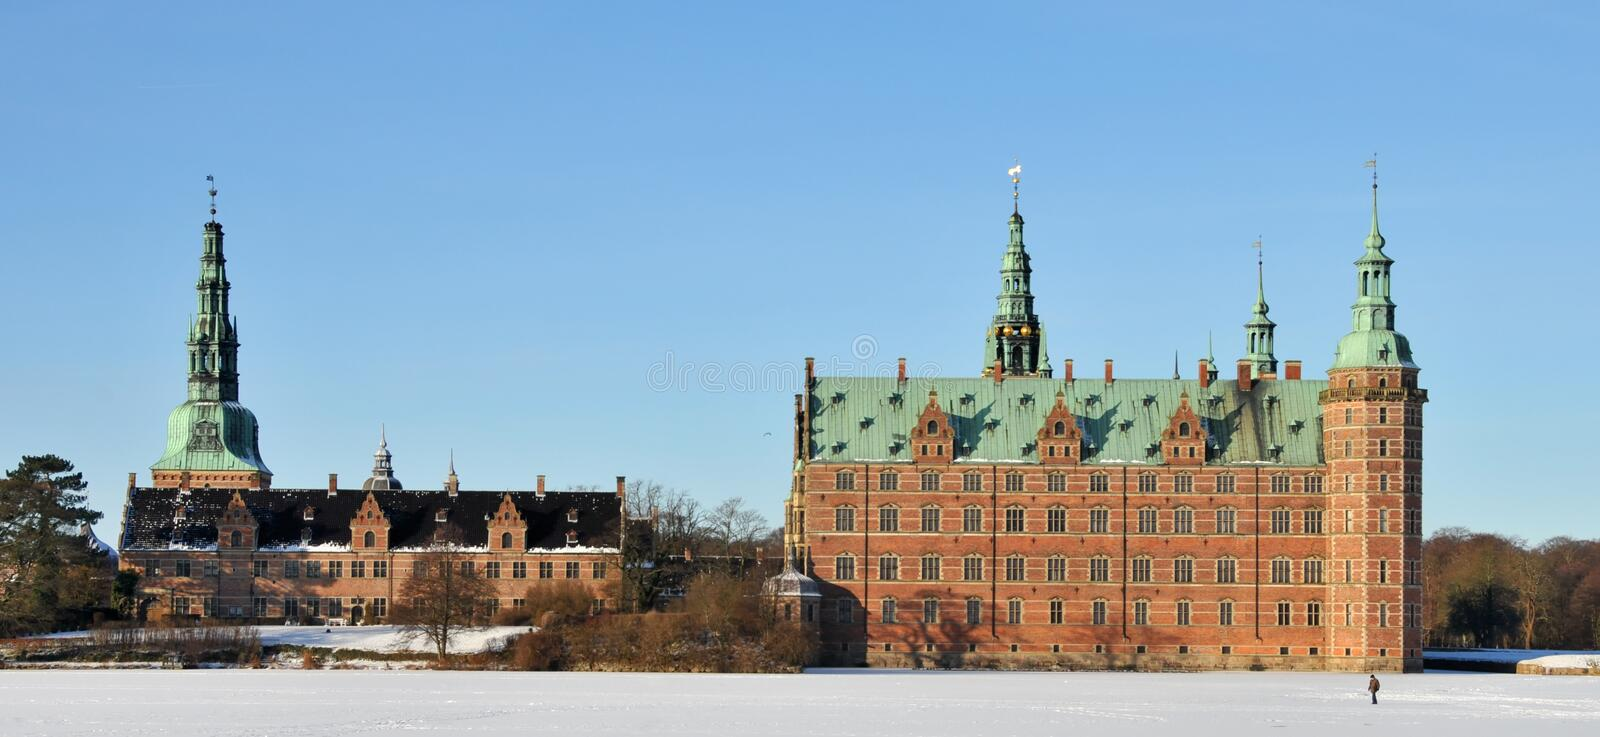 Download Frederiksborg Castle stock photo. Image of cold, frederiksborg - 12487008